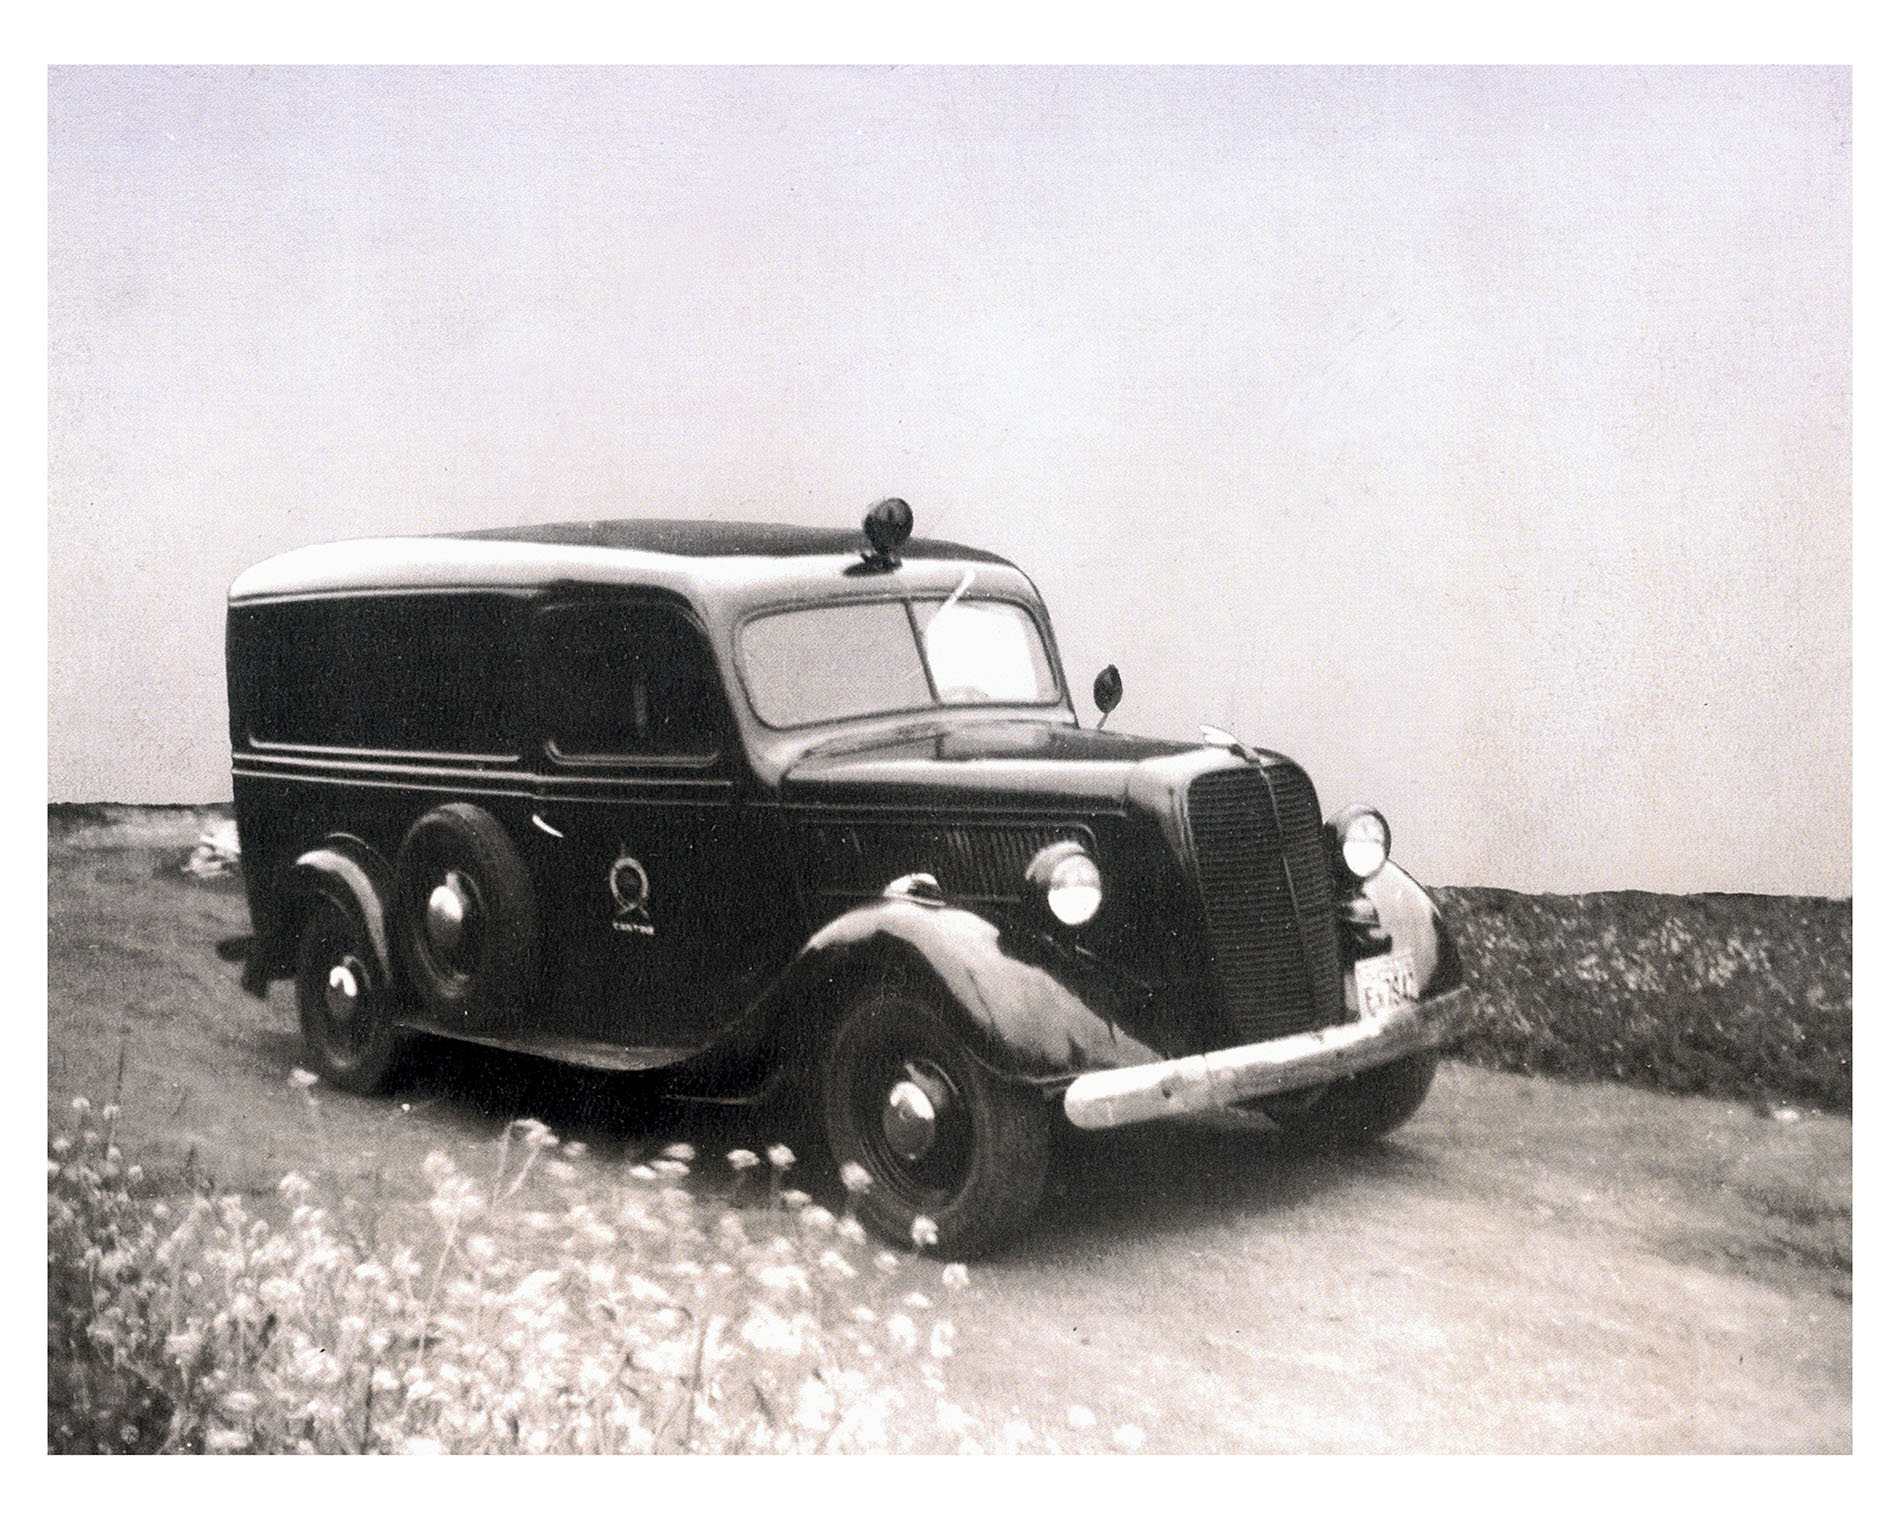 First Canteen International Panel Truck 1939 donated by M Feldman March 1 1946 photo